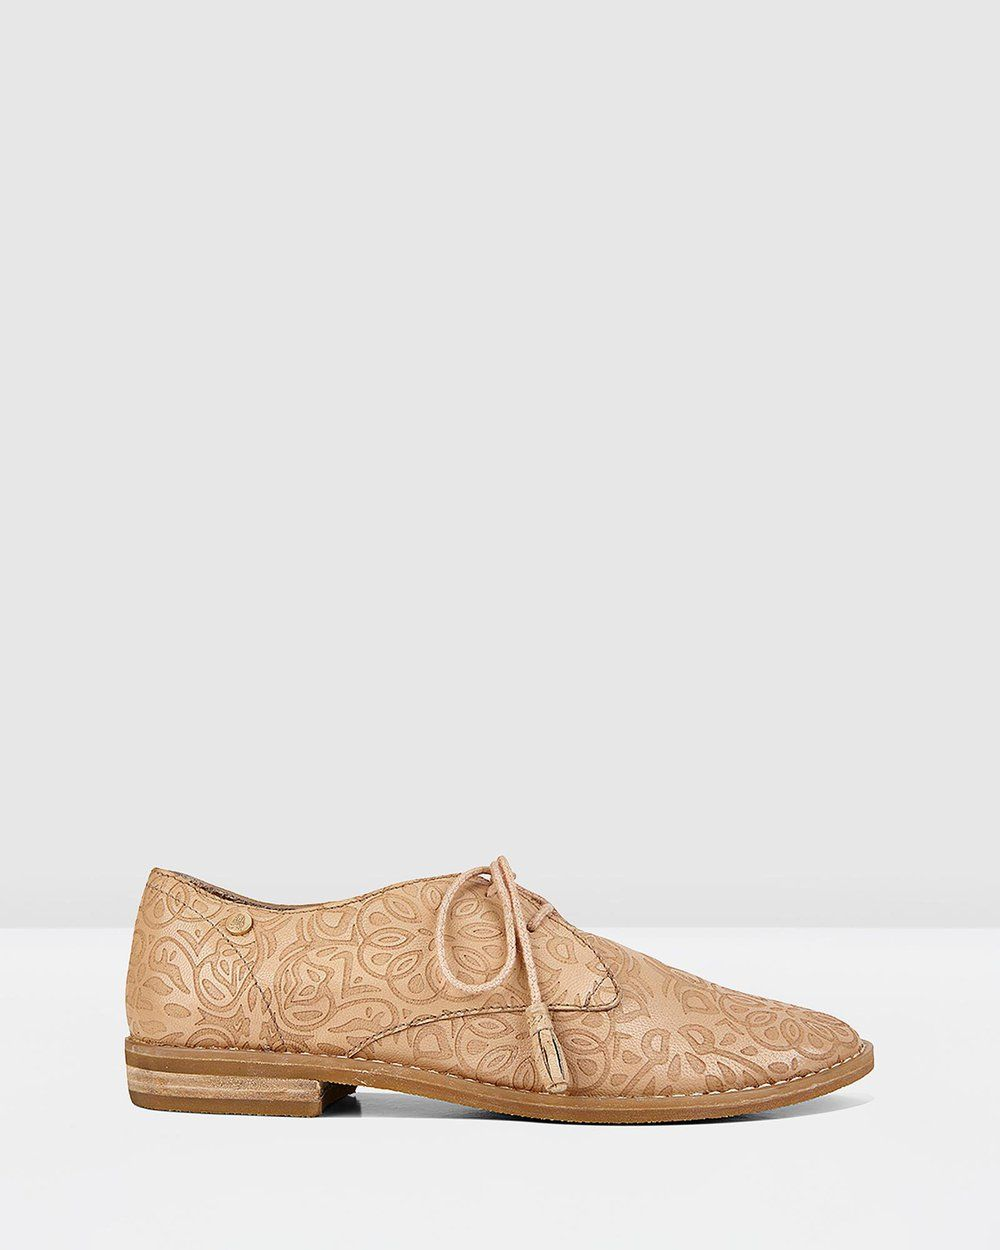 Chardon Oxford By Hush Puppies Online The Iconic Australia Hush Puppies Iconic Australia Hush Hush